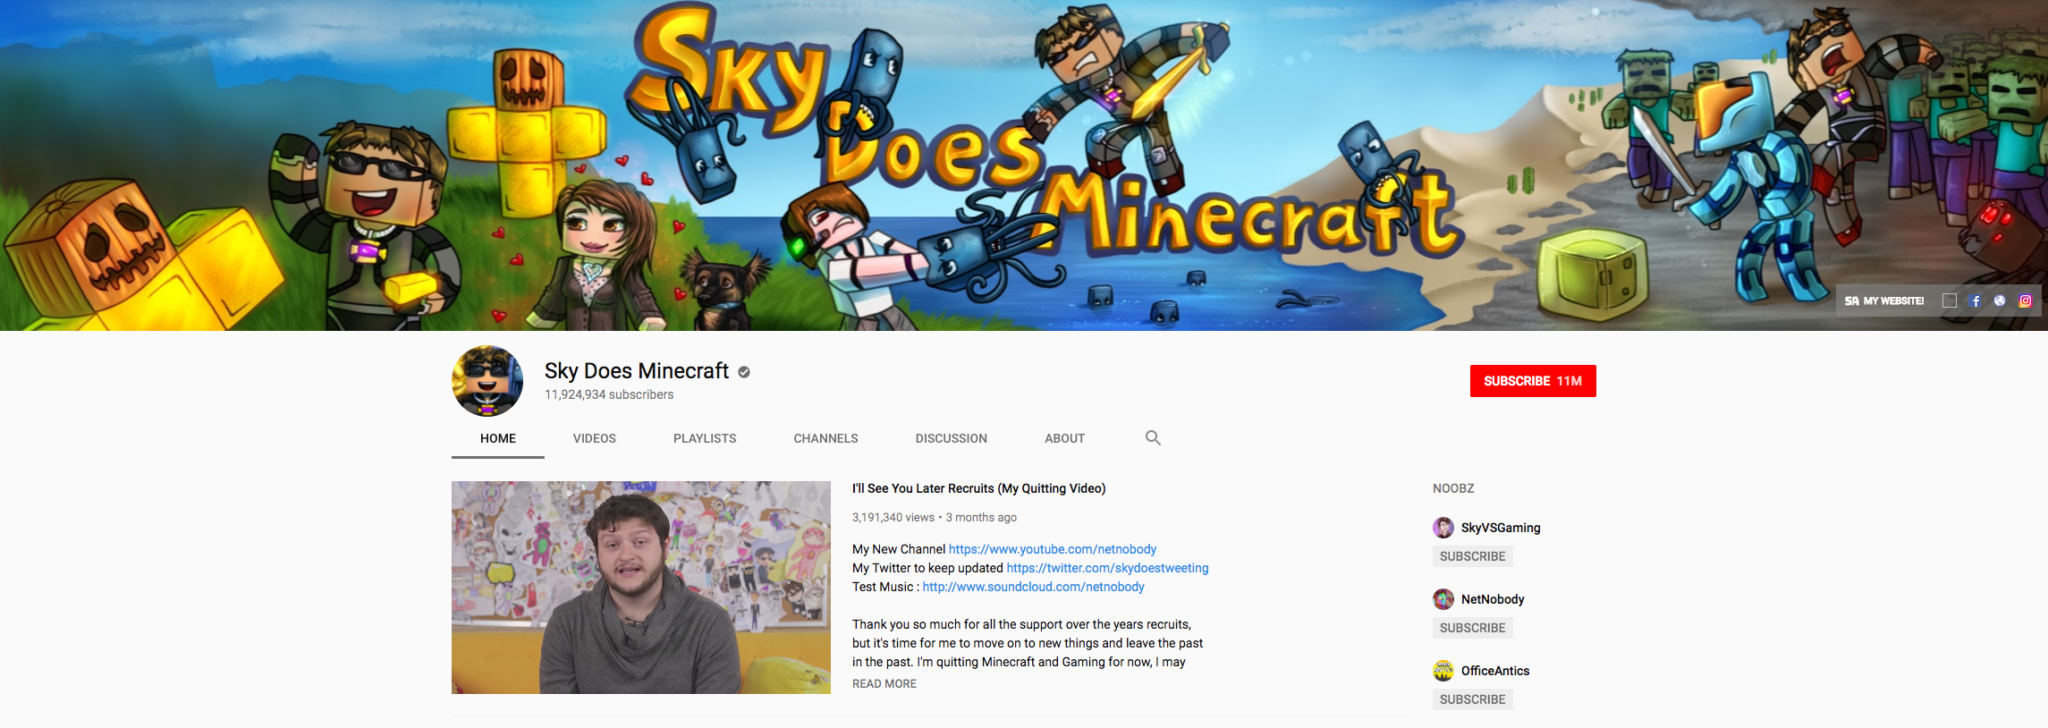 Sky Does Minecraft Top Gaming Influencer